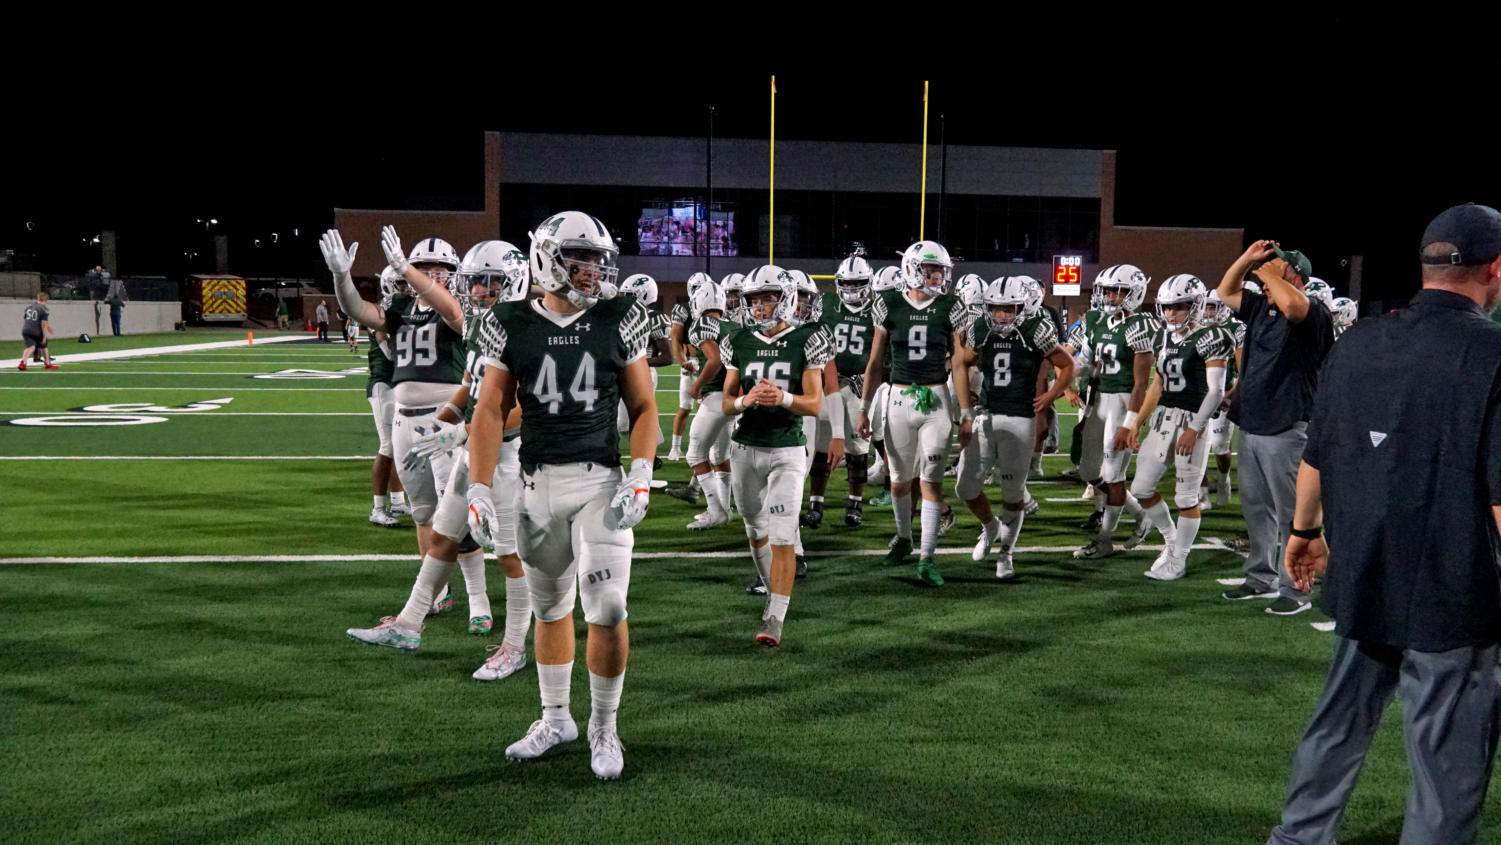 With+the+Eagles%27+win+over+Rowlett+last+Friday+night%2C+they+look+to+face+Timber+Creek+High+School+Friday+night+at+7%3A00+p.m.+The+Falcons+lost+38-10+to+Rockwall+Heath.+The+game+will+be+home+at+Children%27s+Health.+